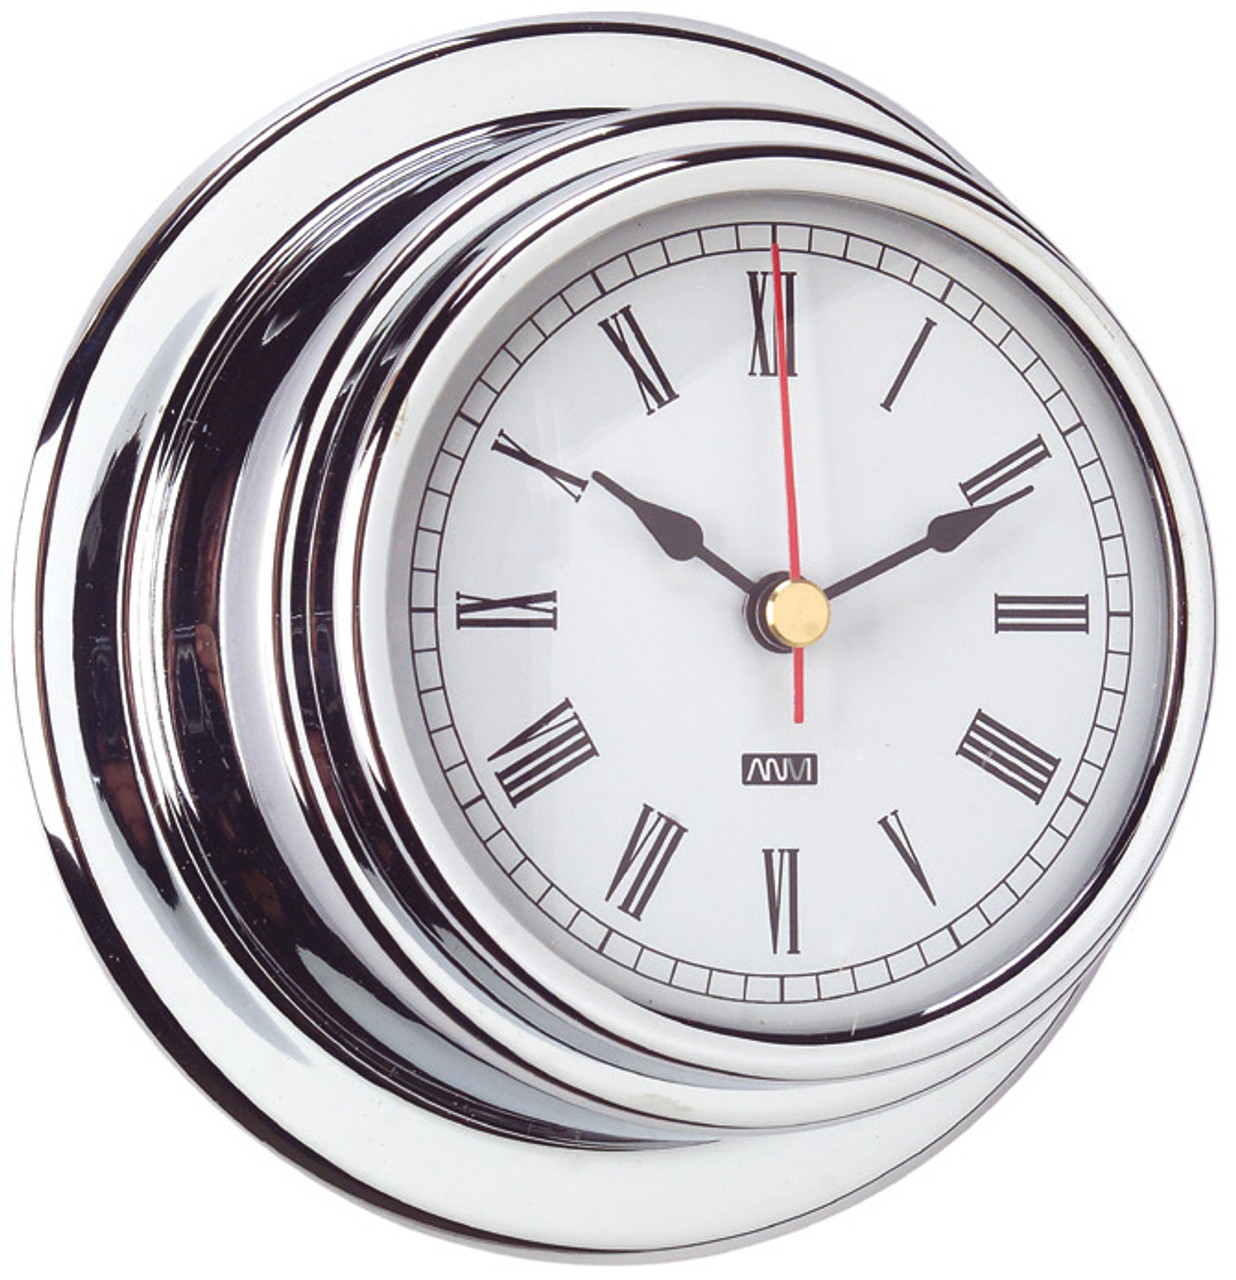 Clock - 120mm Chrome Plated Brass with Roman numerals